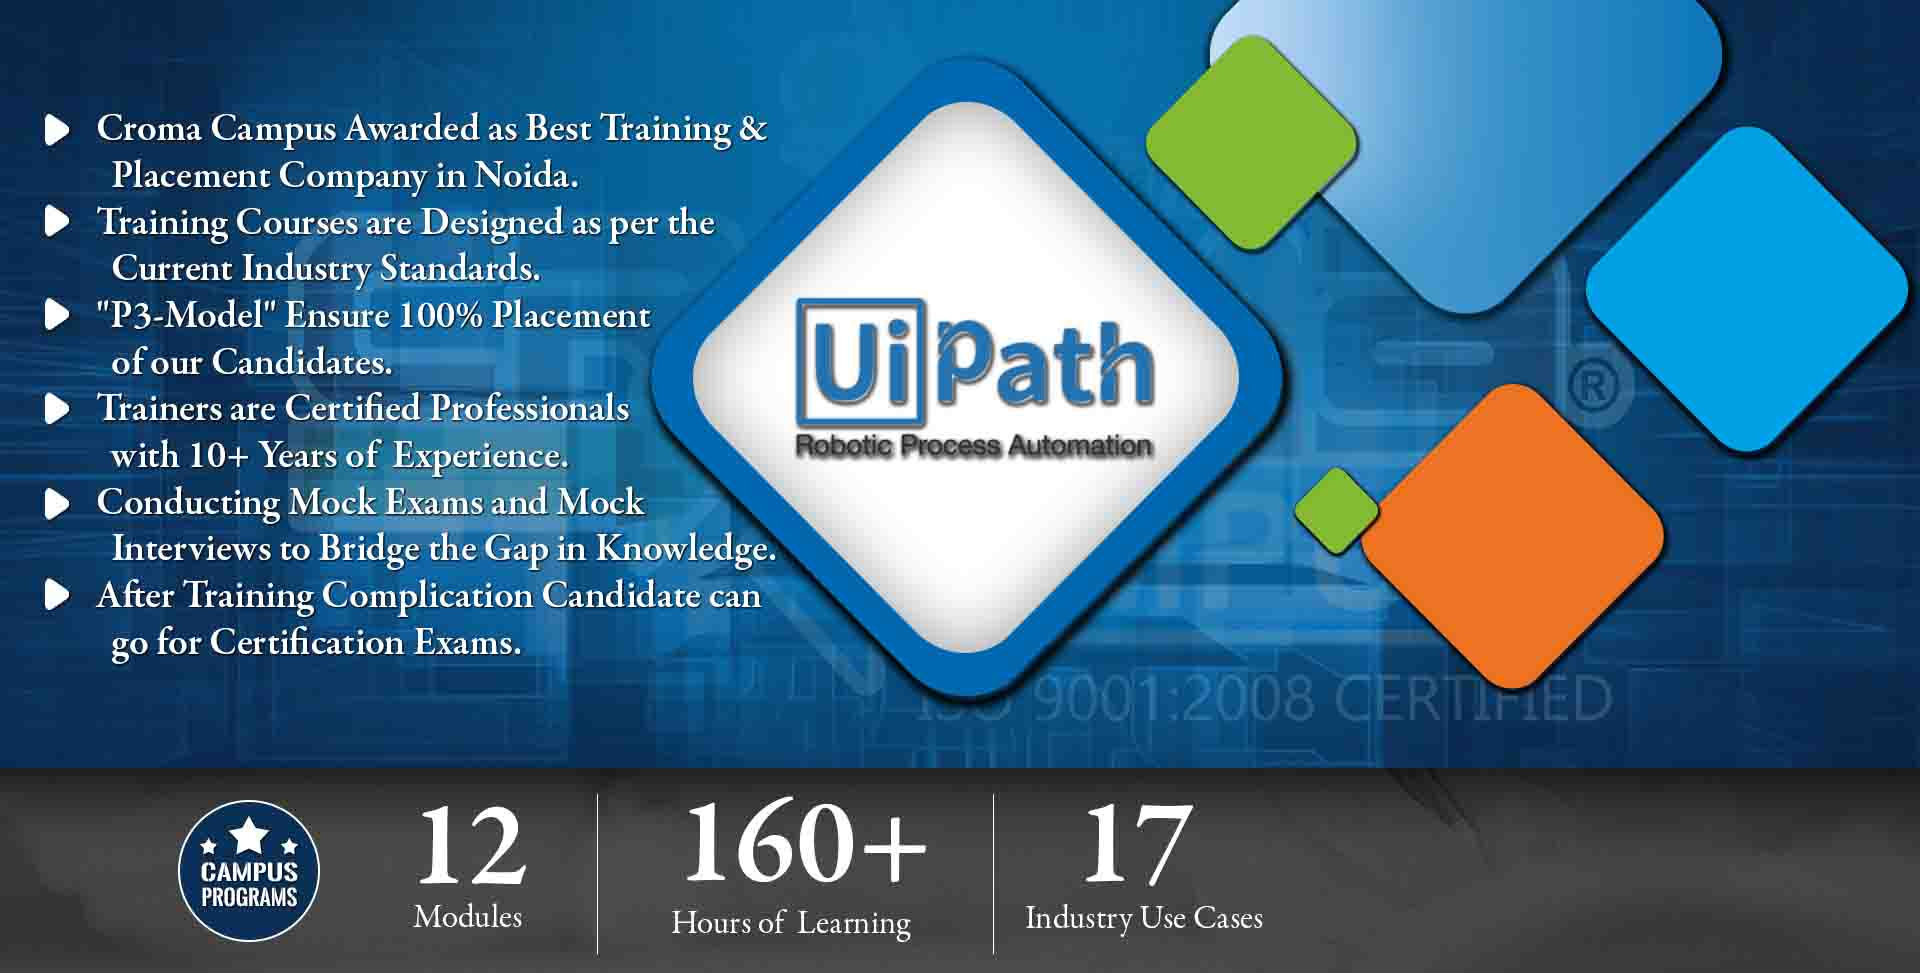 UI Path Training in Delhi NCR- Croma Campus